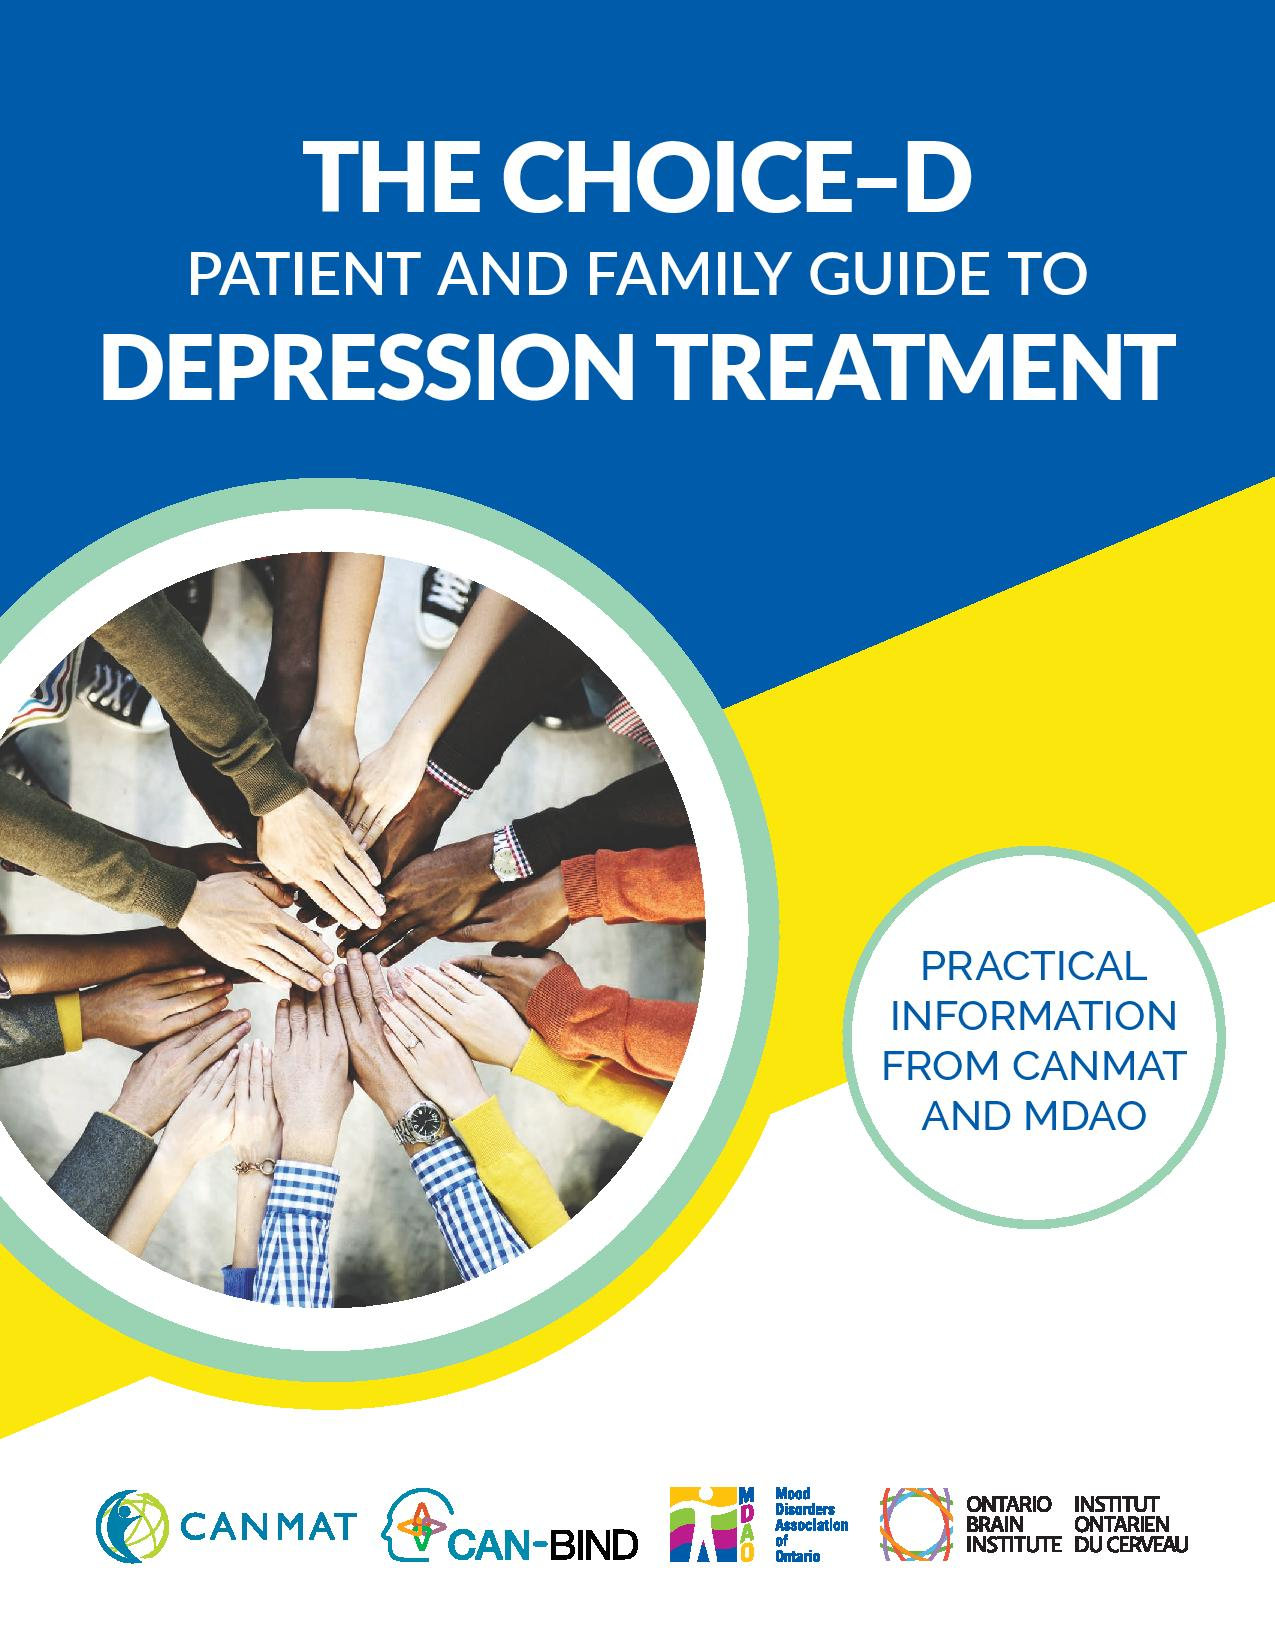 The CHOICE-D Patient and Family Guide to Depression Treatment